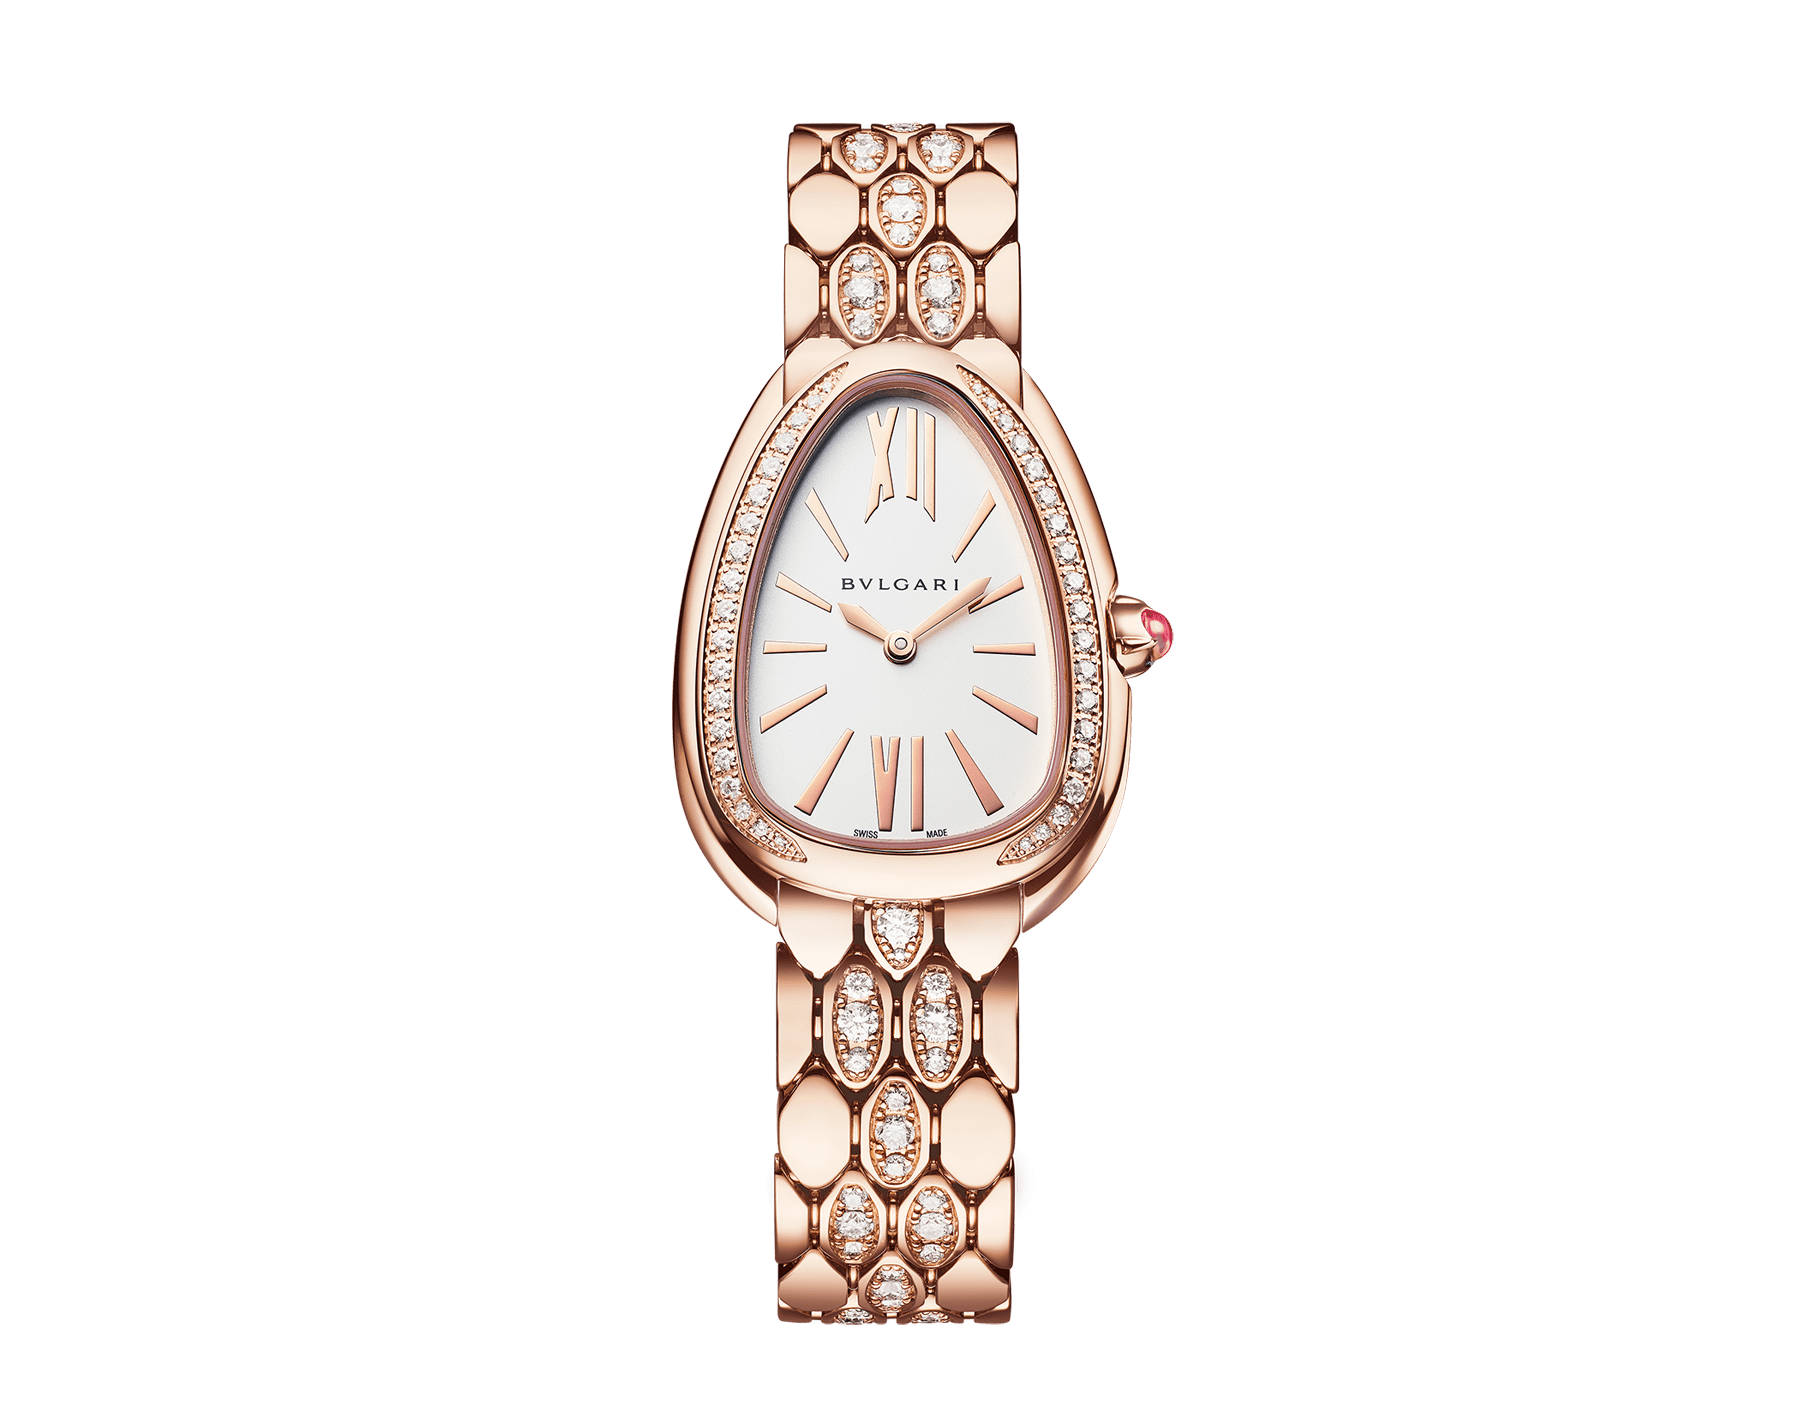 Serpenti Seduttori watch with 18 kt rose gold case and bracelet both set with diamonds, and white dial 103275 image 1